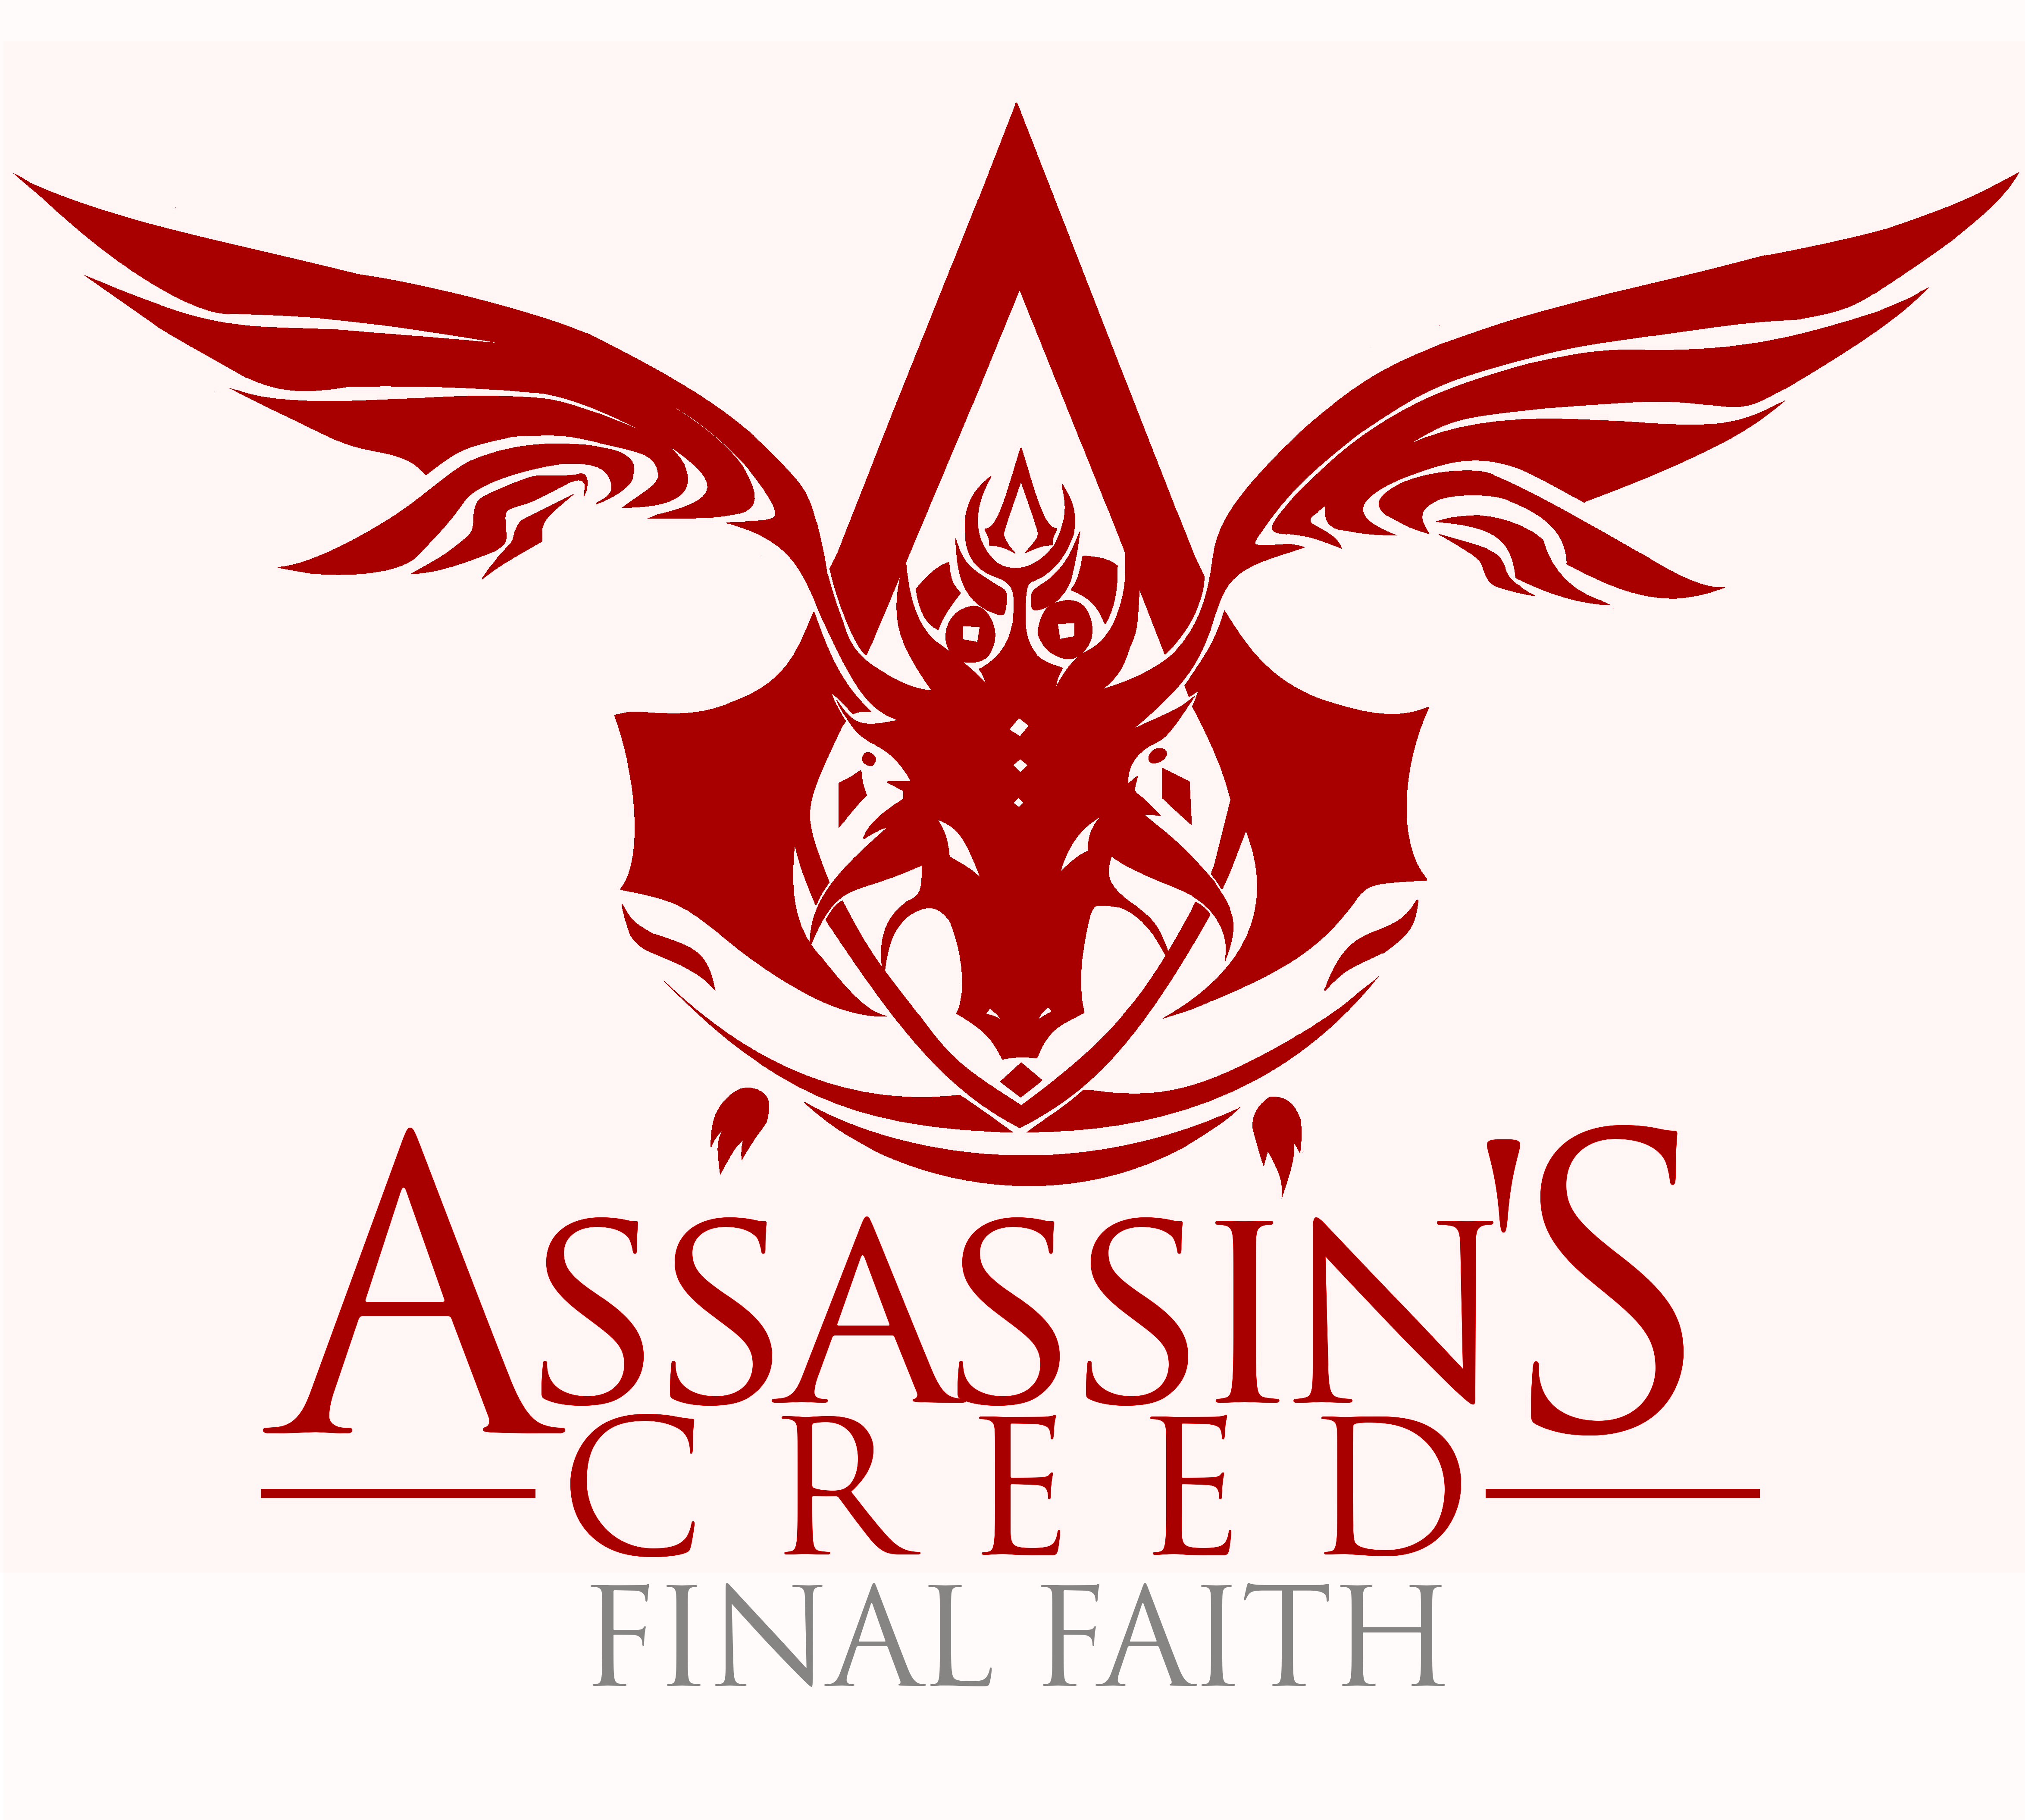 Assassin S Creed Final Faith Tribal Symbol By Dirtydirtysam On